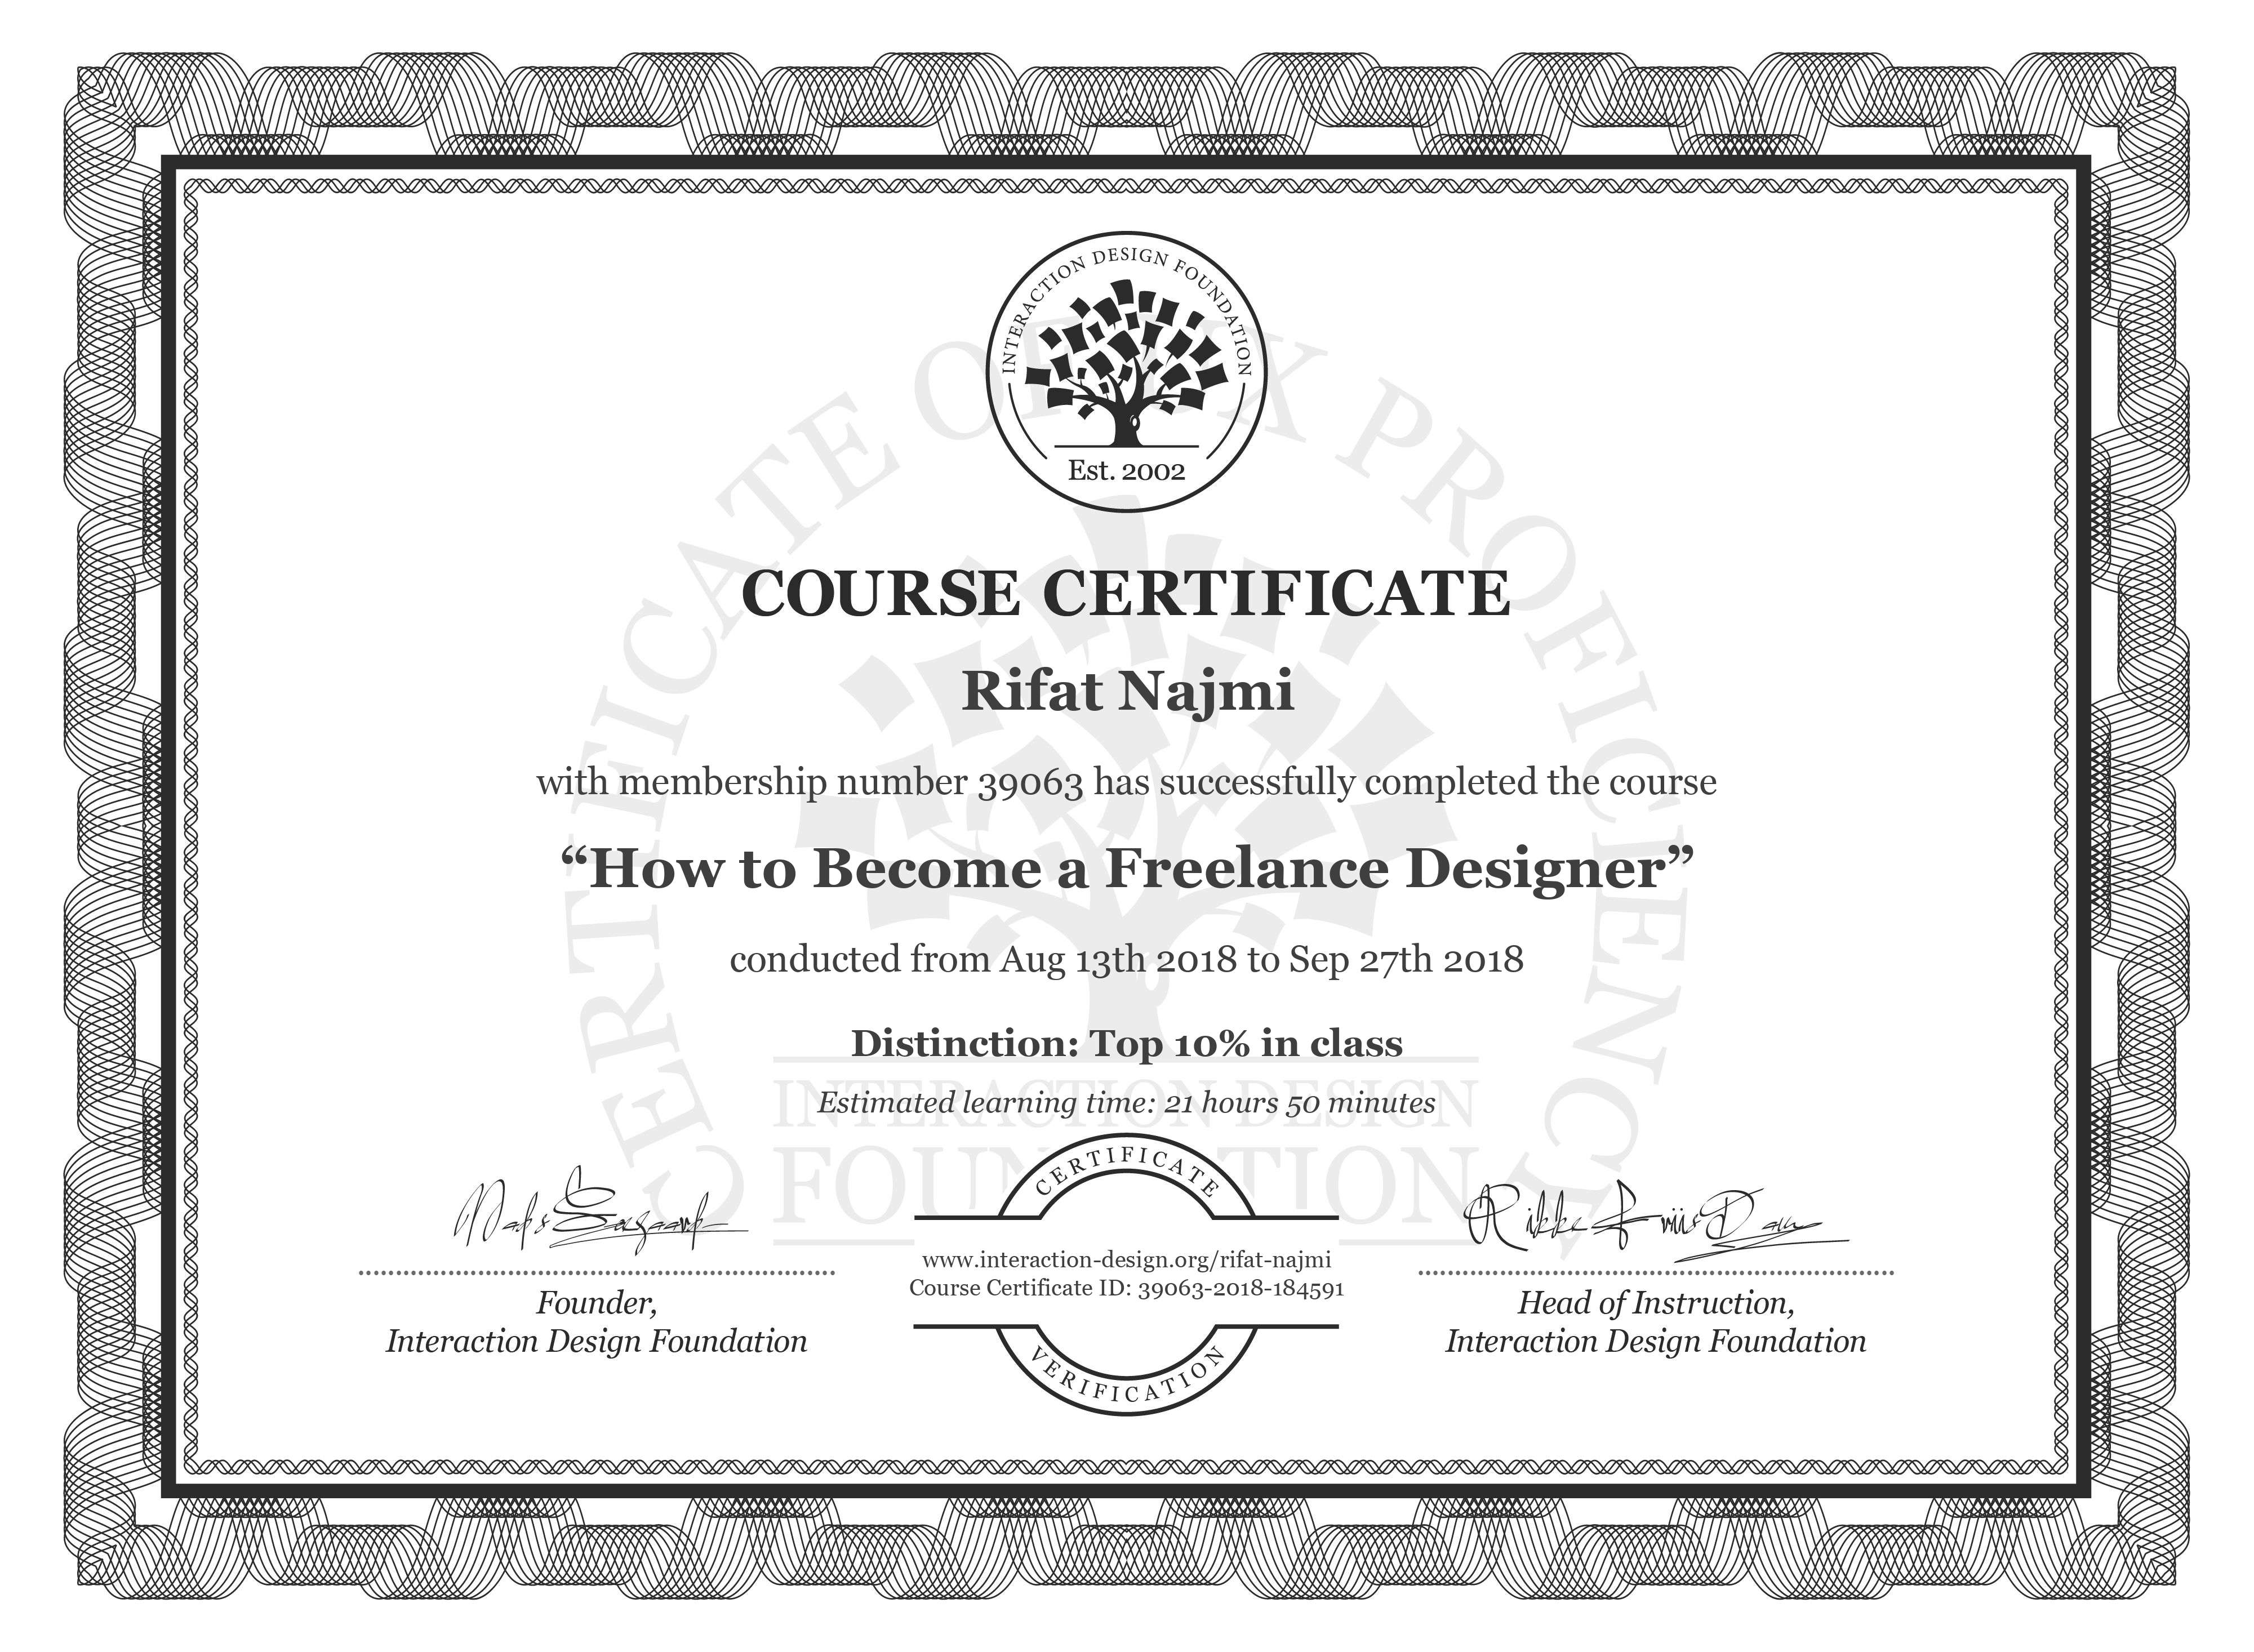 Rifat Najmi: Course Certificate - How to Become a Freelance Designer